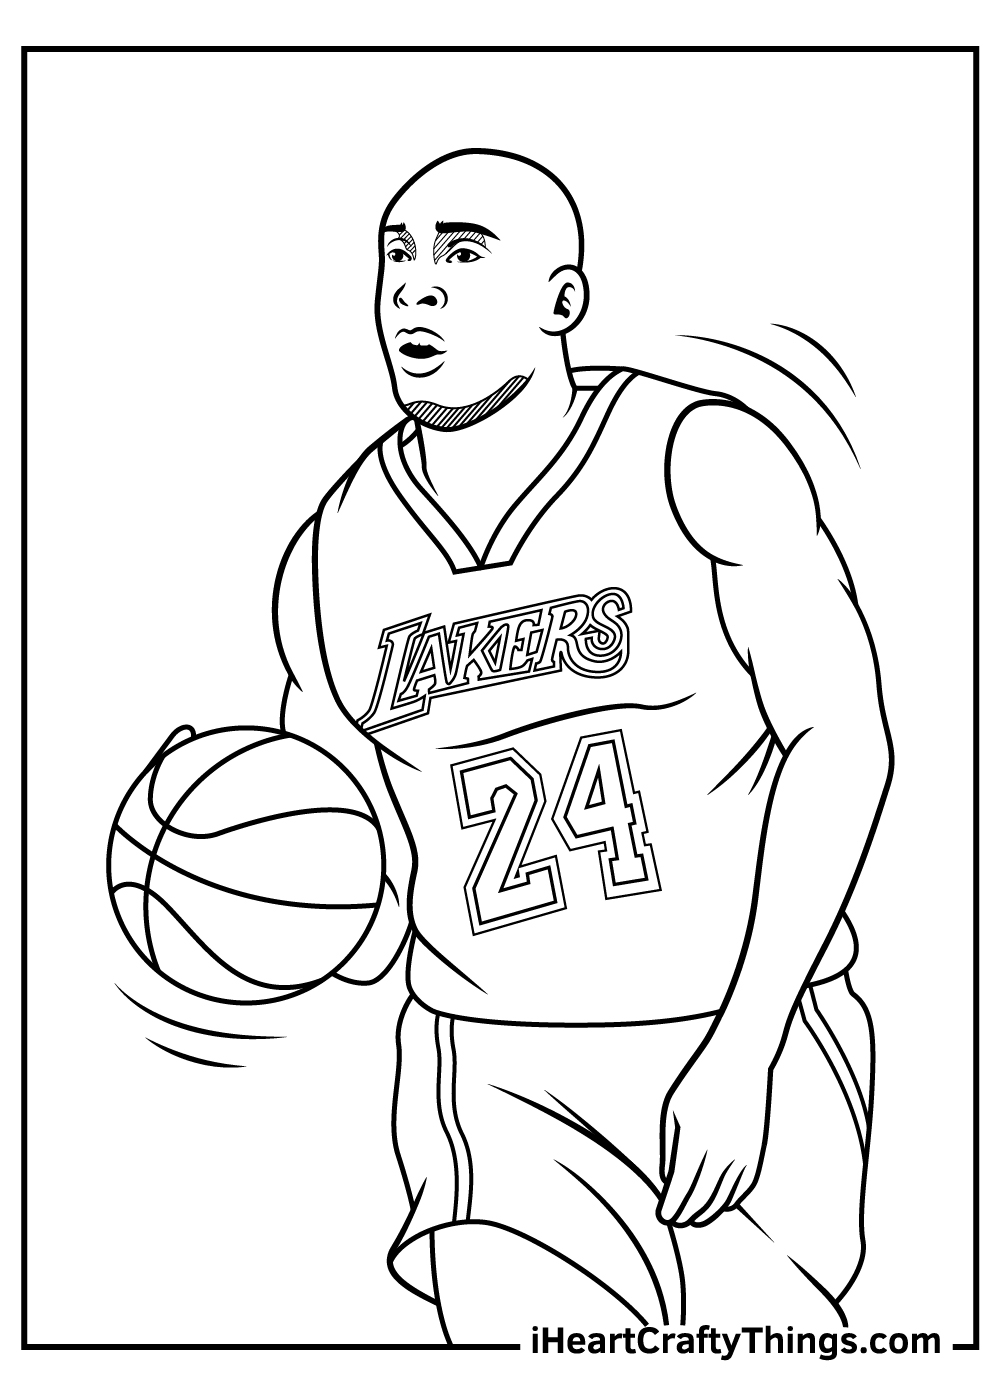 Kobe Bryant Coloring Pages free download